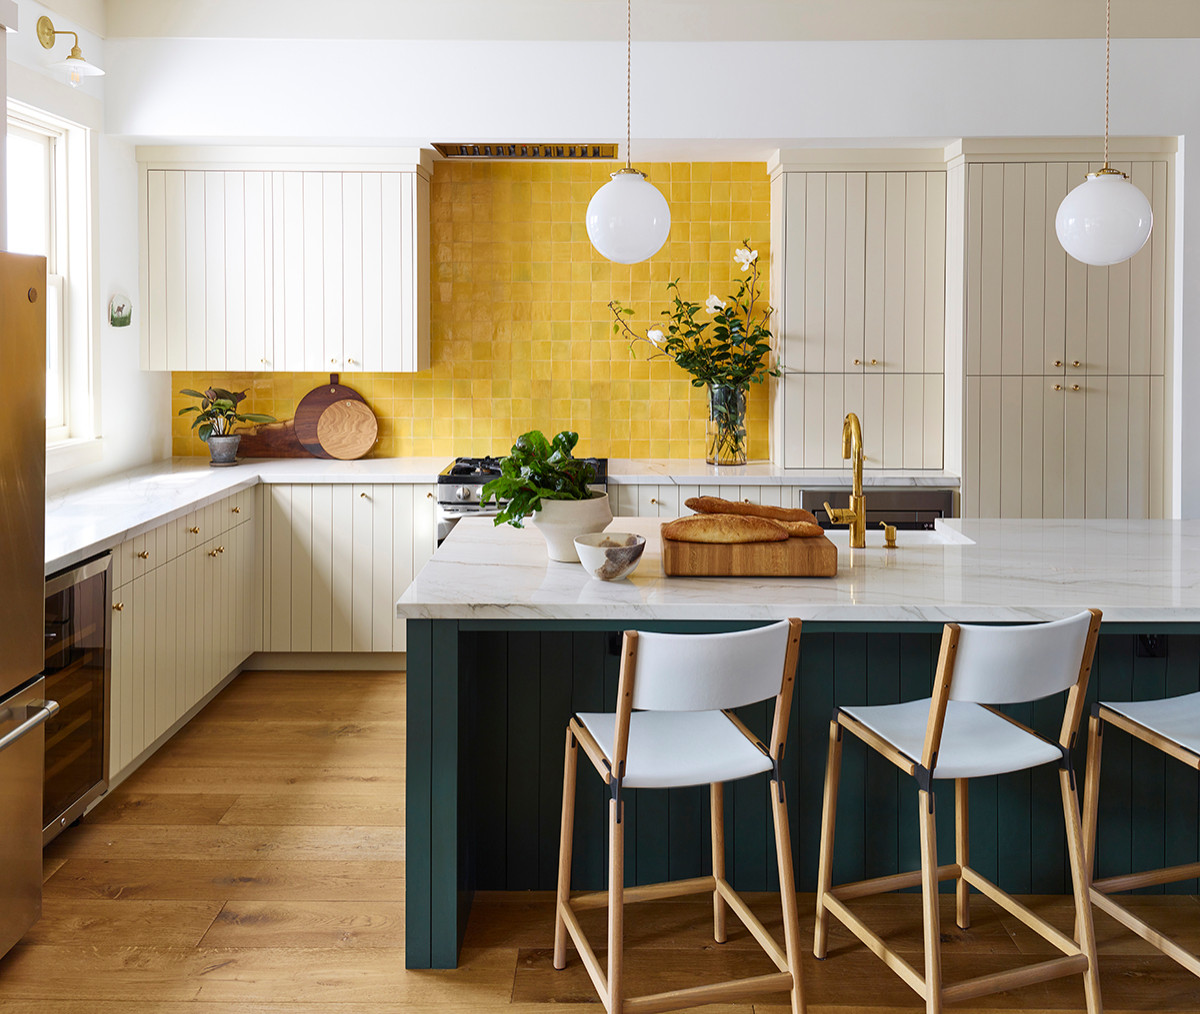 75 Beautiful Home Design Pictures Ideas September 2020 Houzz